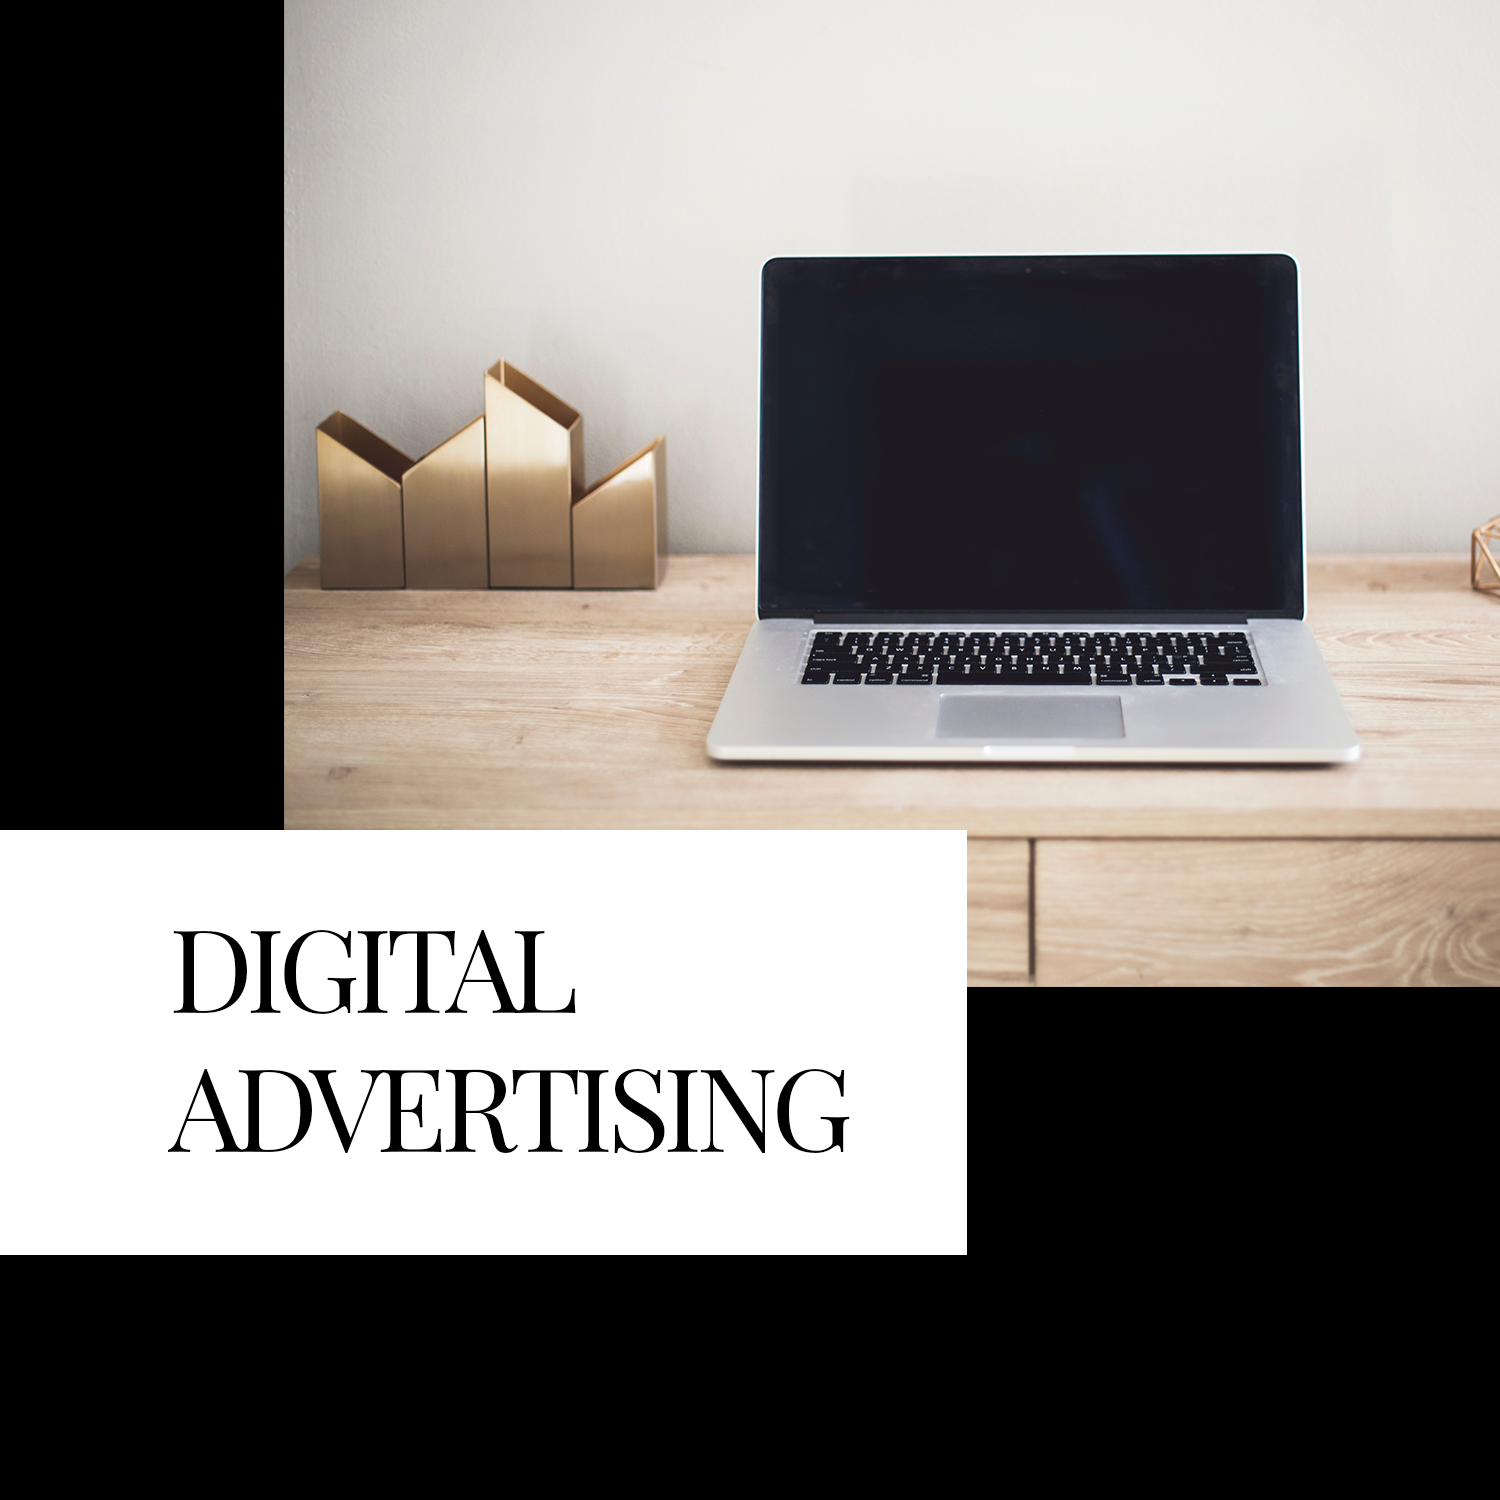 Online advertising - We provide targeted social media and Google advertising campaigns based on location, demographics, and behaviors to increase business exposure and reach potential customers.